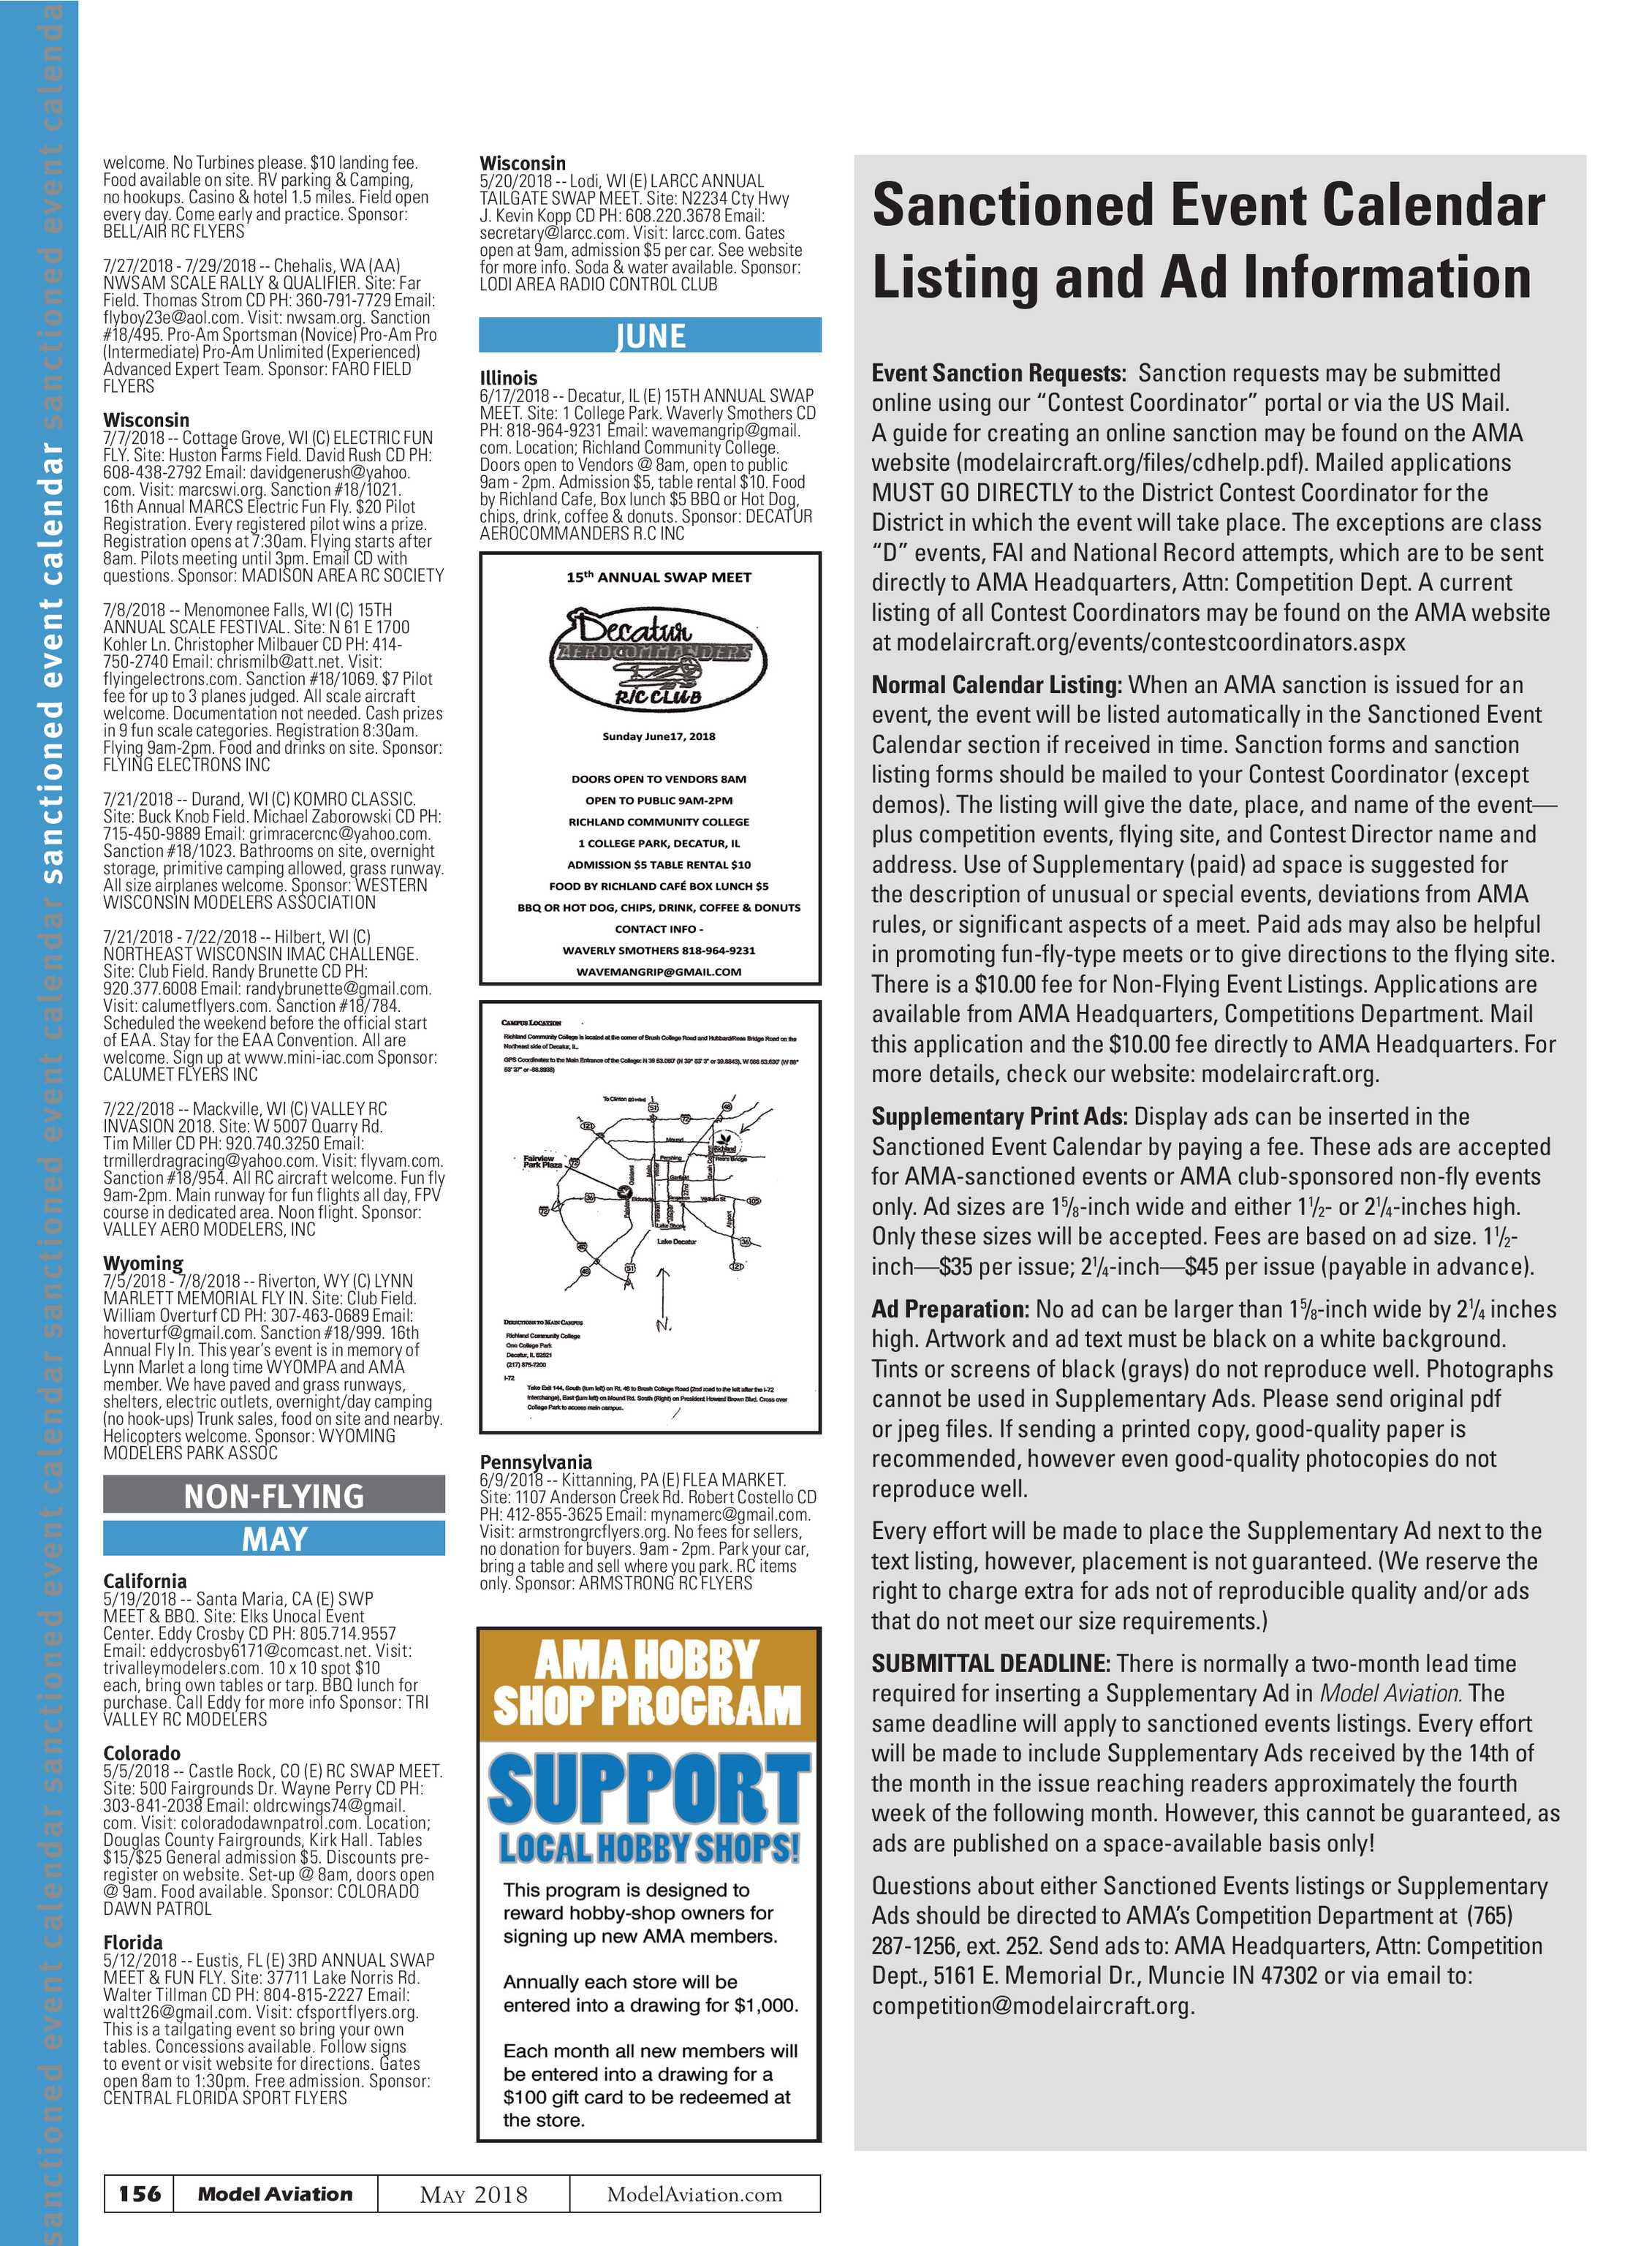 Model Aviation - May 2018 - page 157